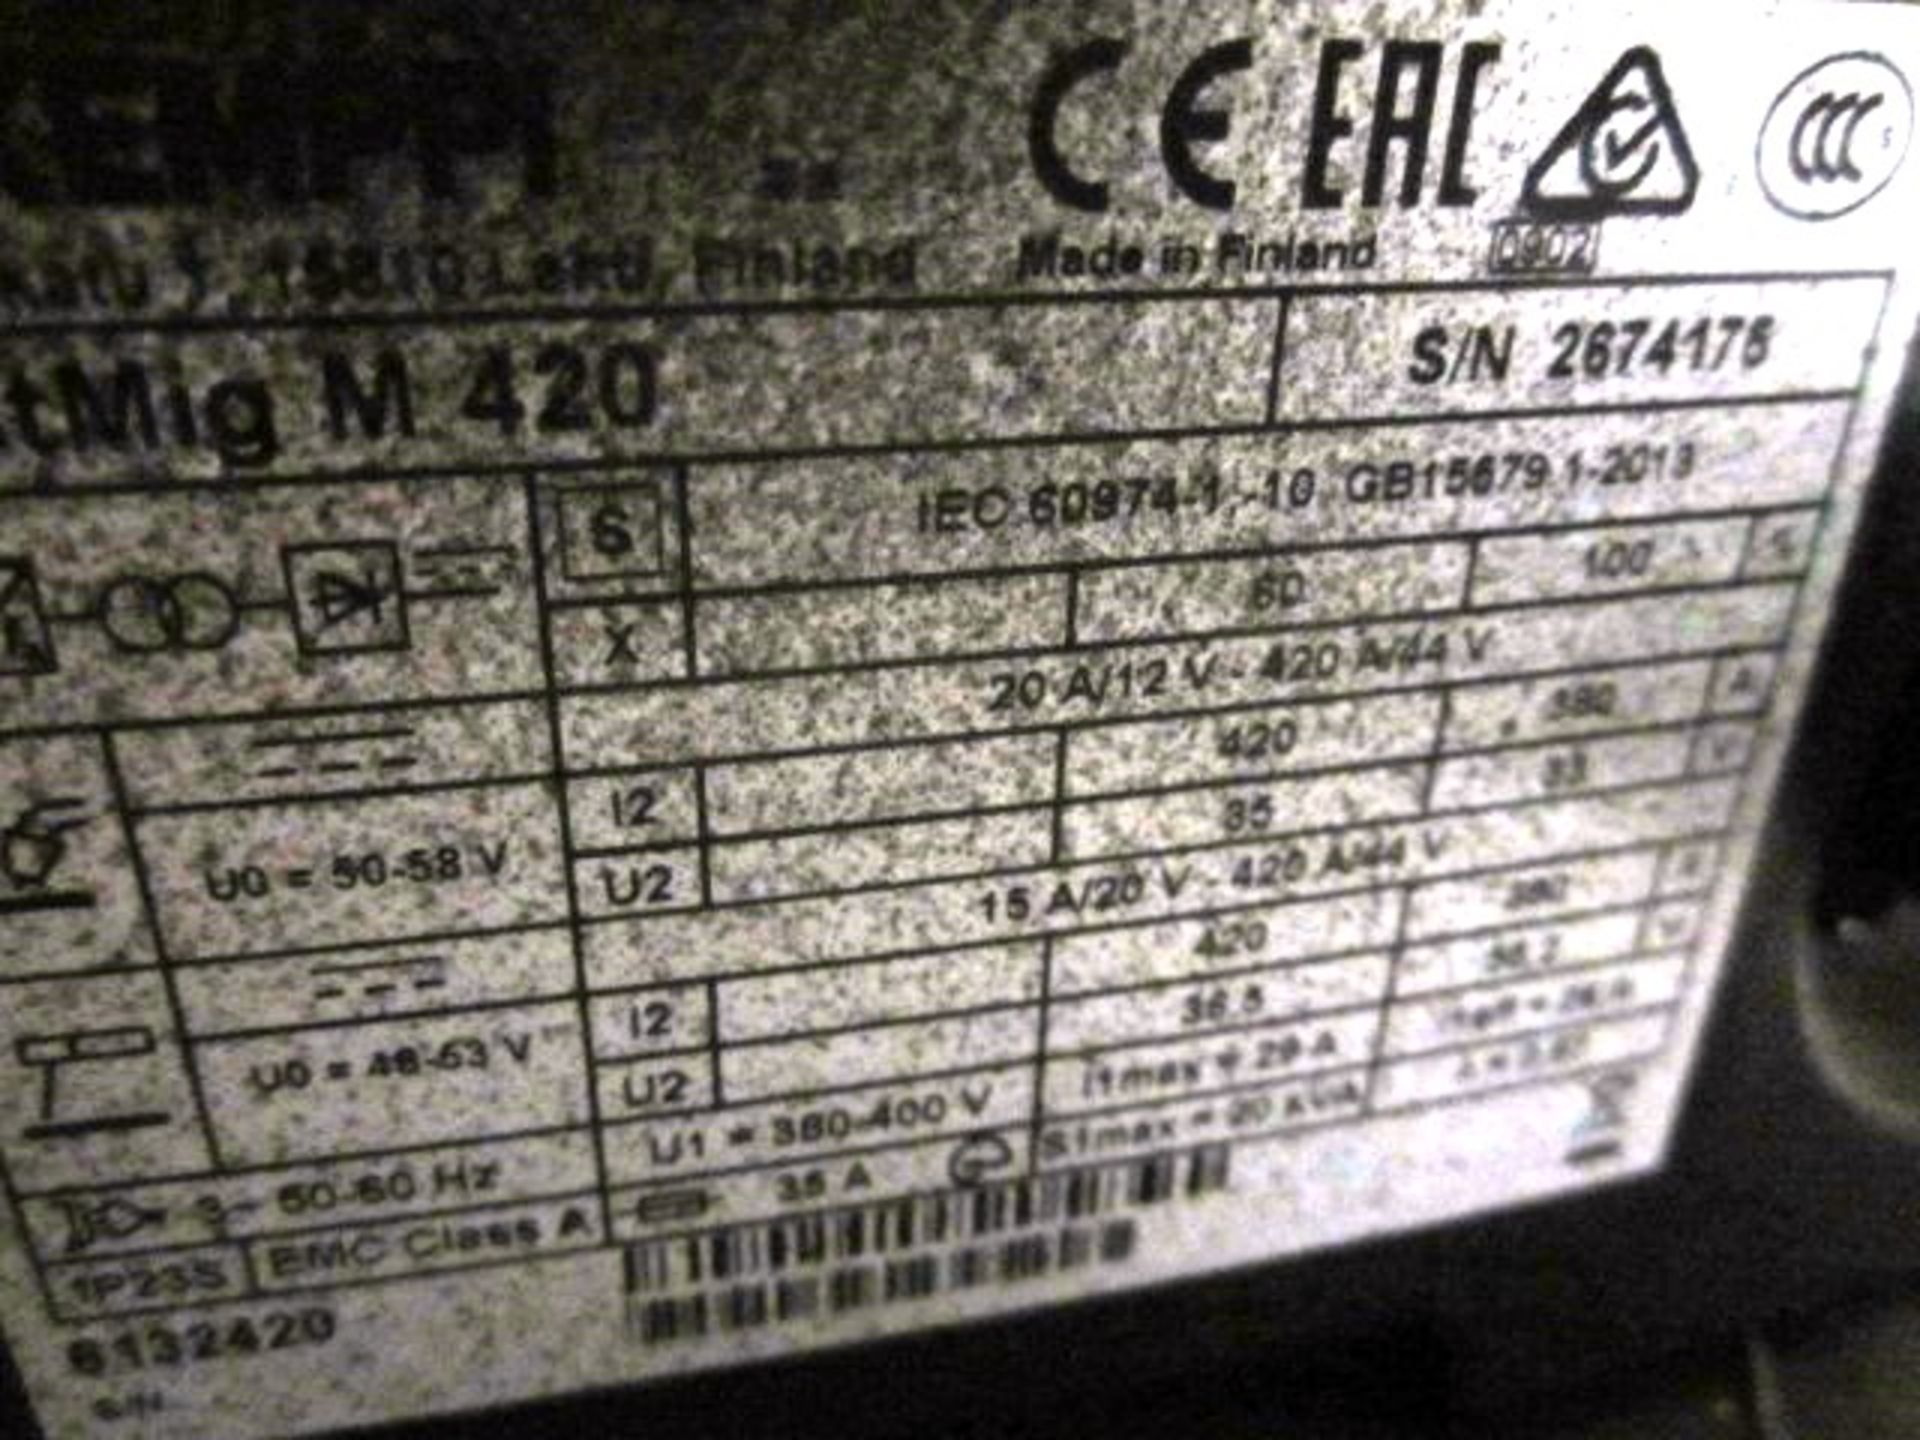 Kemppi Fast Mig M420 mig welder, serial no. 2674175, with Fast Mig MXF65 wire feeder, serial no. - Image 7 of 7